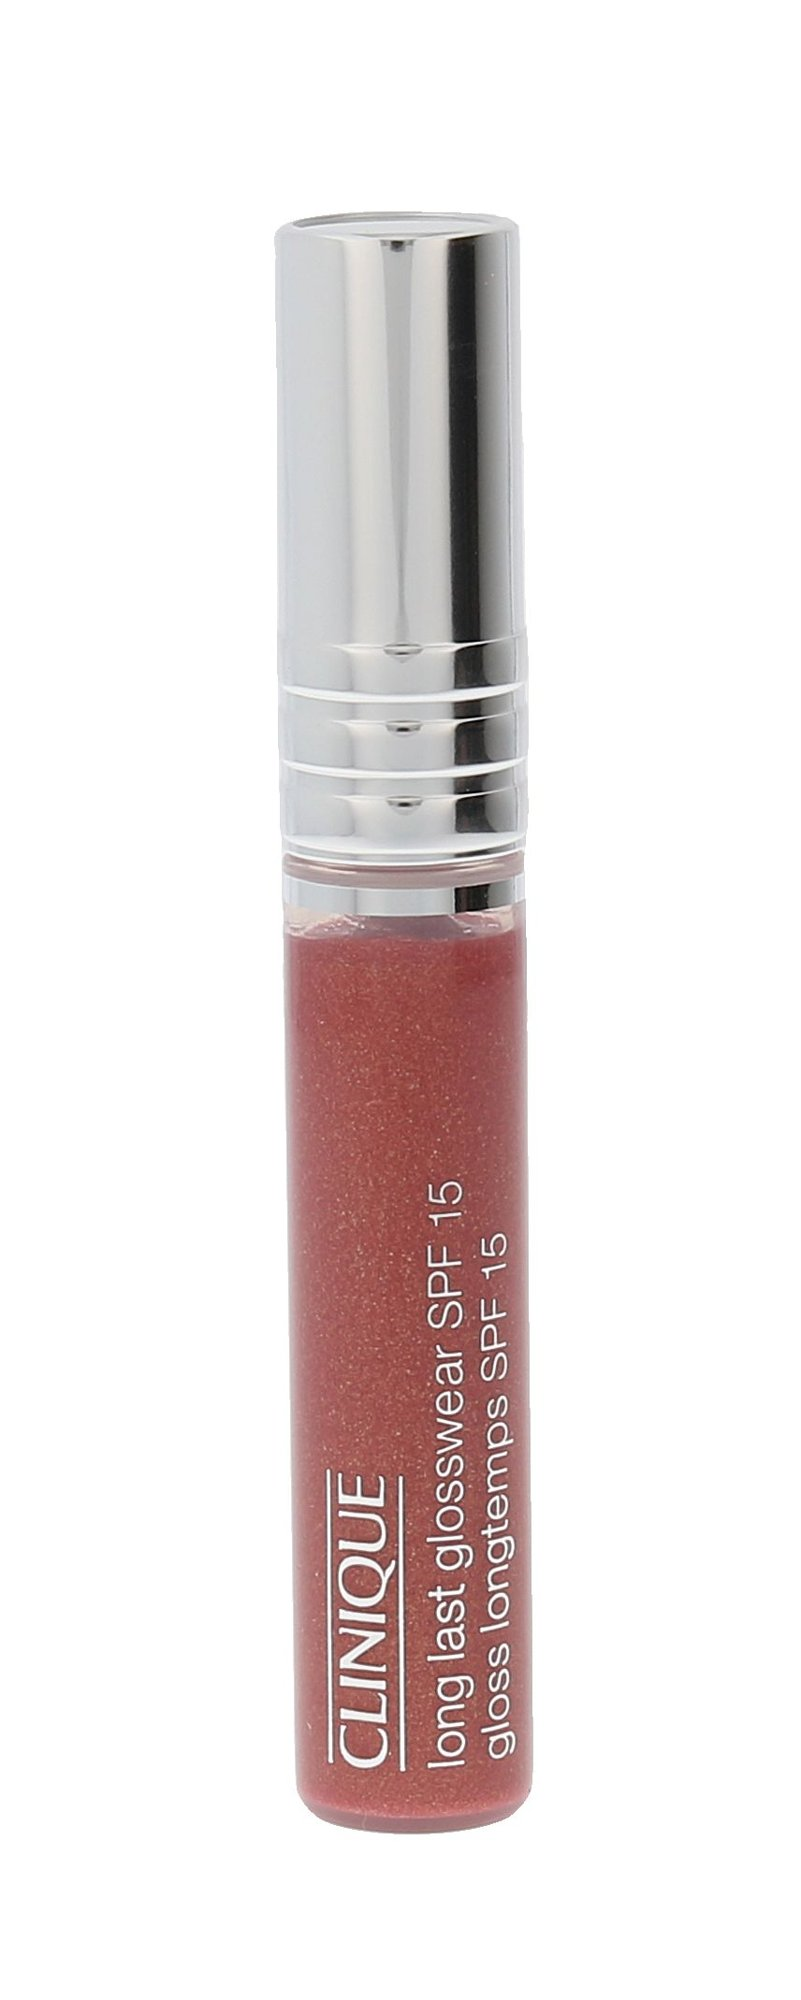 Clinique Long Last Glosswear Cosmetic 6ml 07 Bonfire